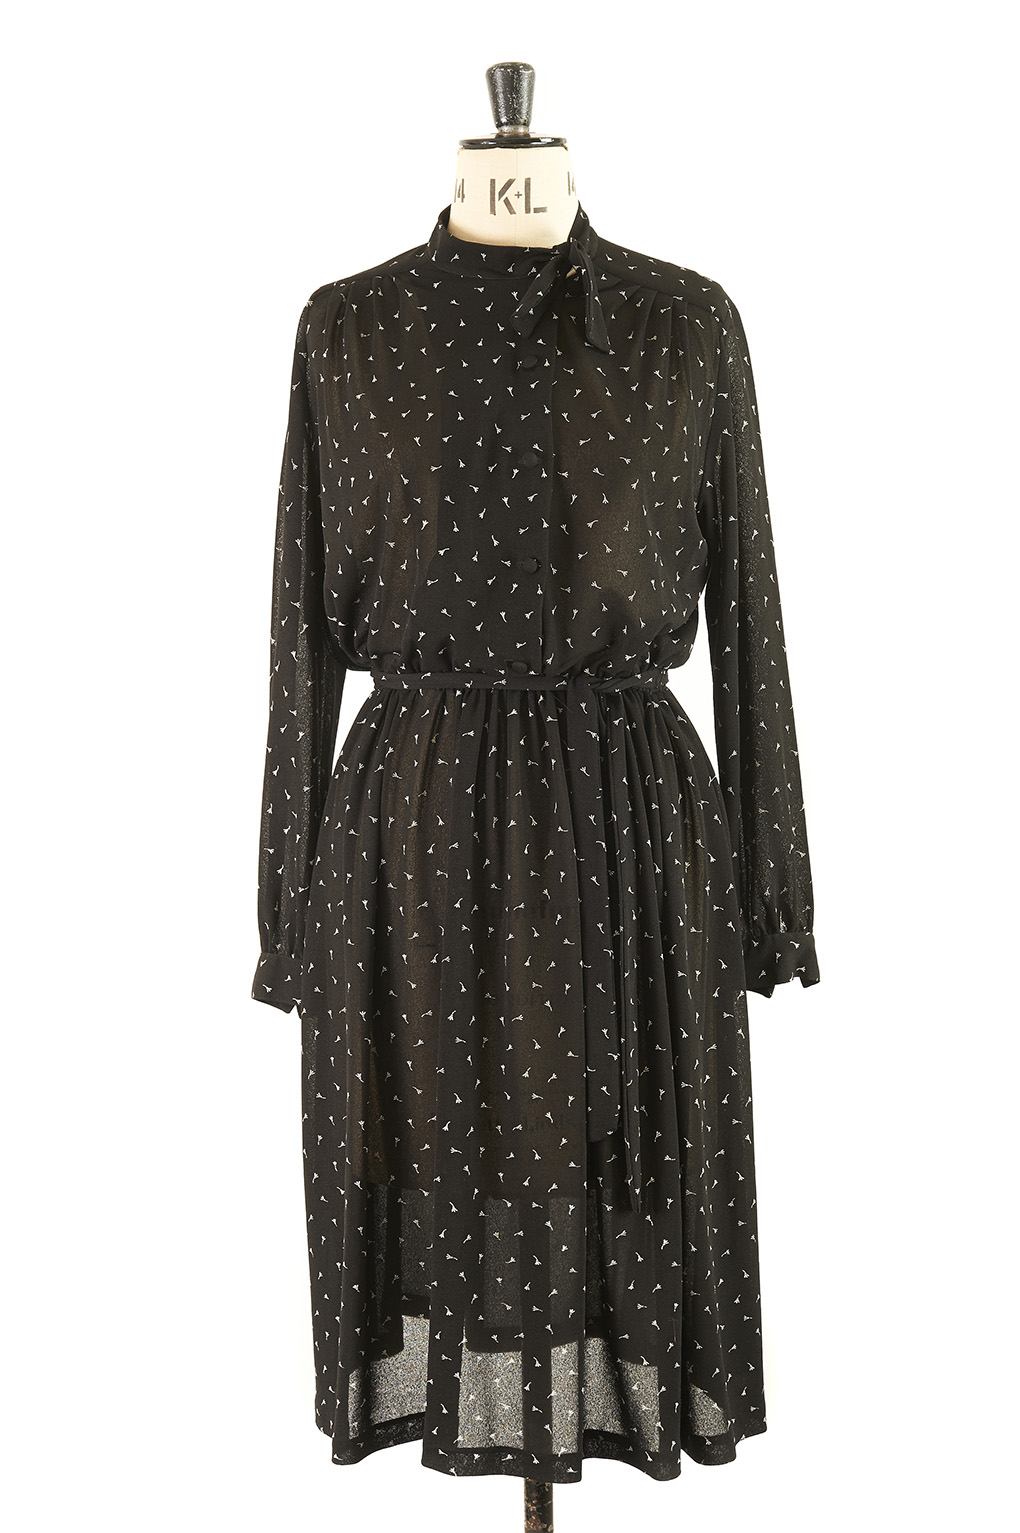 Ladylike and chic true vintage dress with pussy bow.